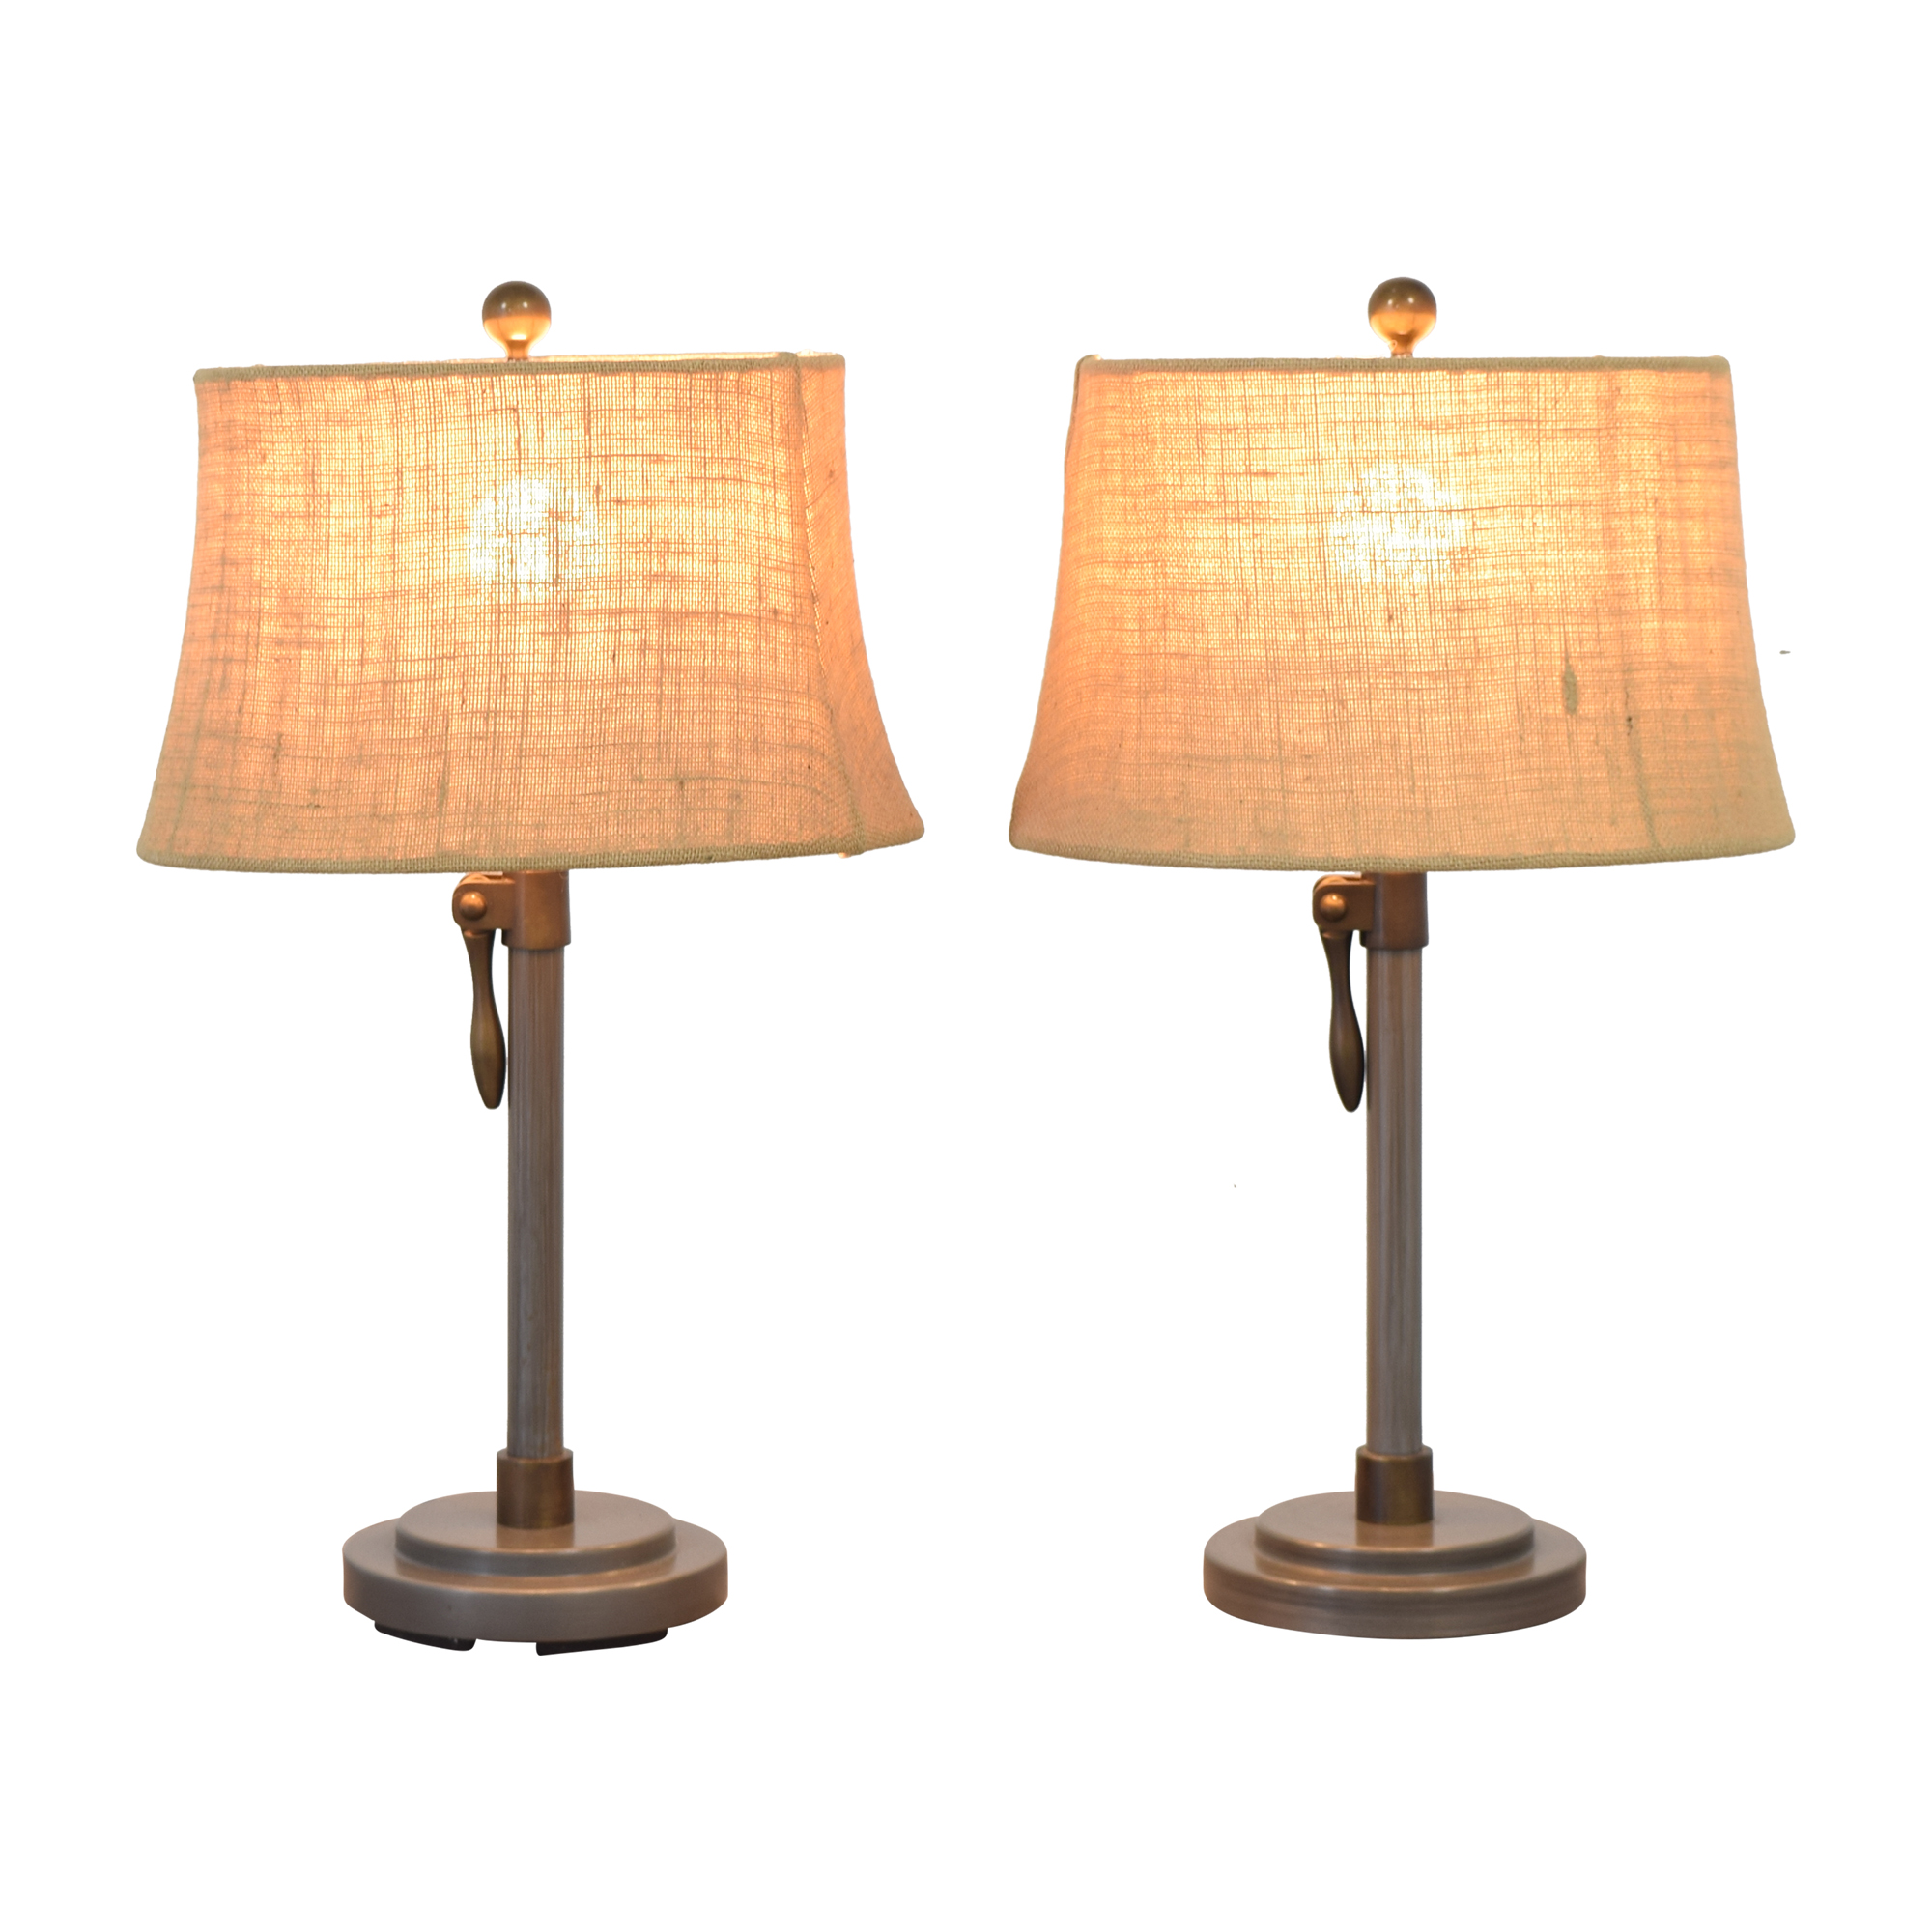 buy Pottery Barn Pottery Barn Sutter Adjustable Lever Table Lamps online